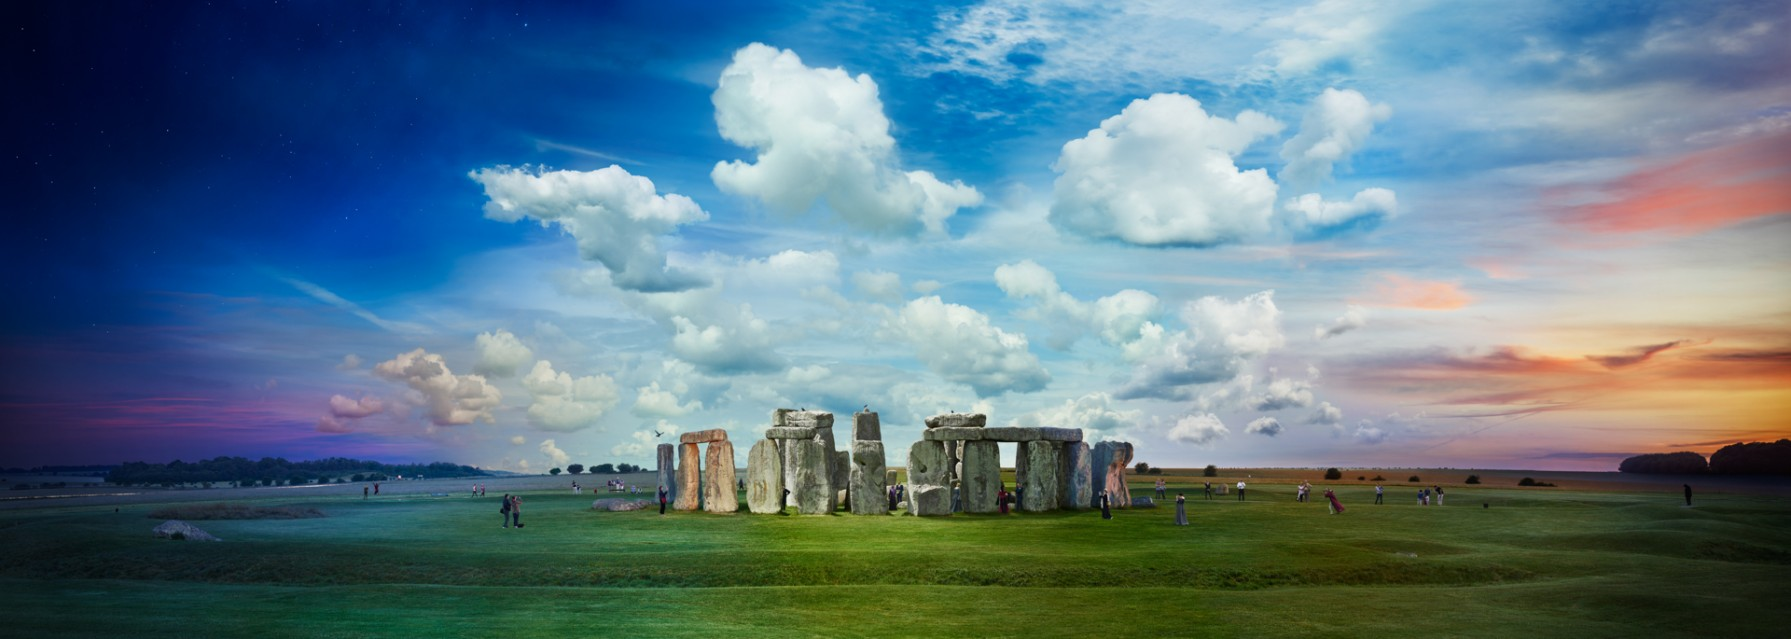 Stonehenge, United Kingdom - Stephen WILKES